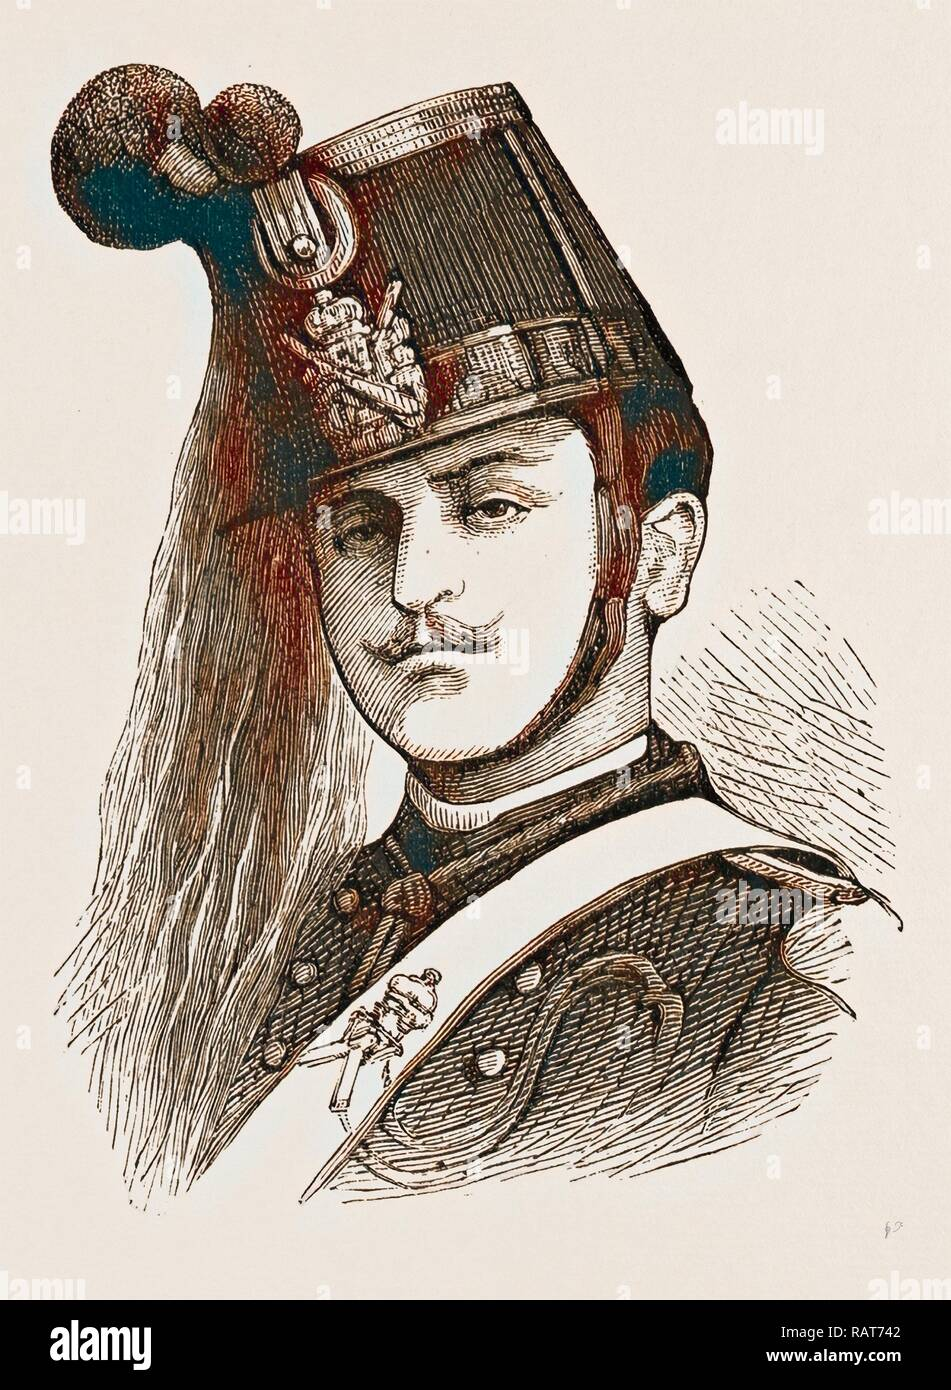 ITALIAN SOLDIER, ENGRAVING 1873, ITALY. Reimagined by Gibon. Classic art with a modern twist reimagined - Stock Image